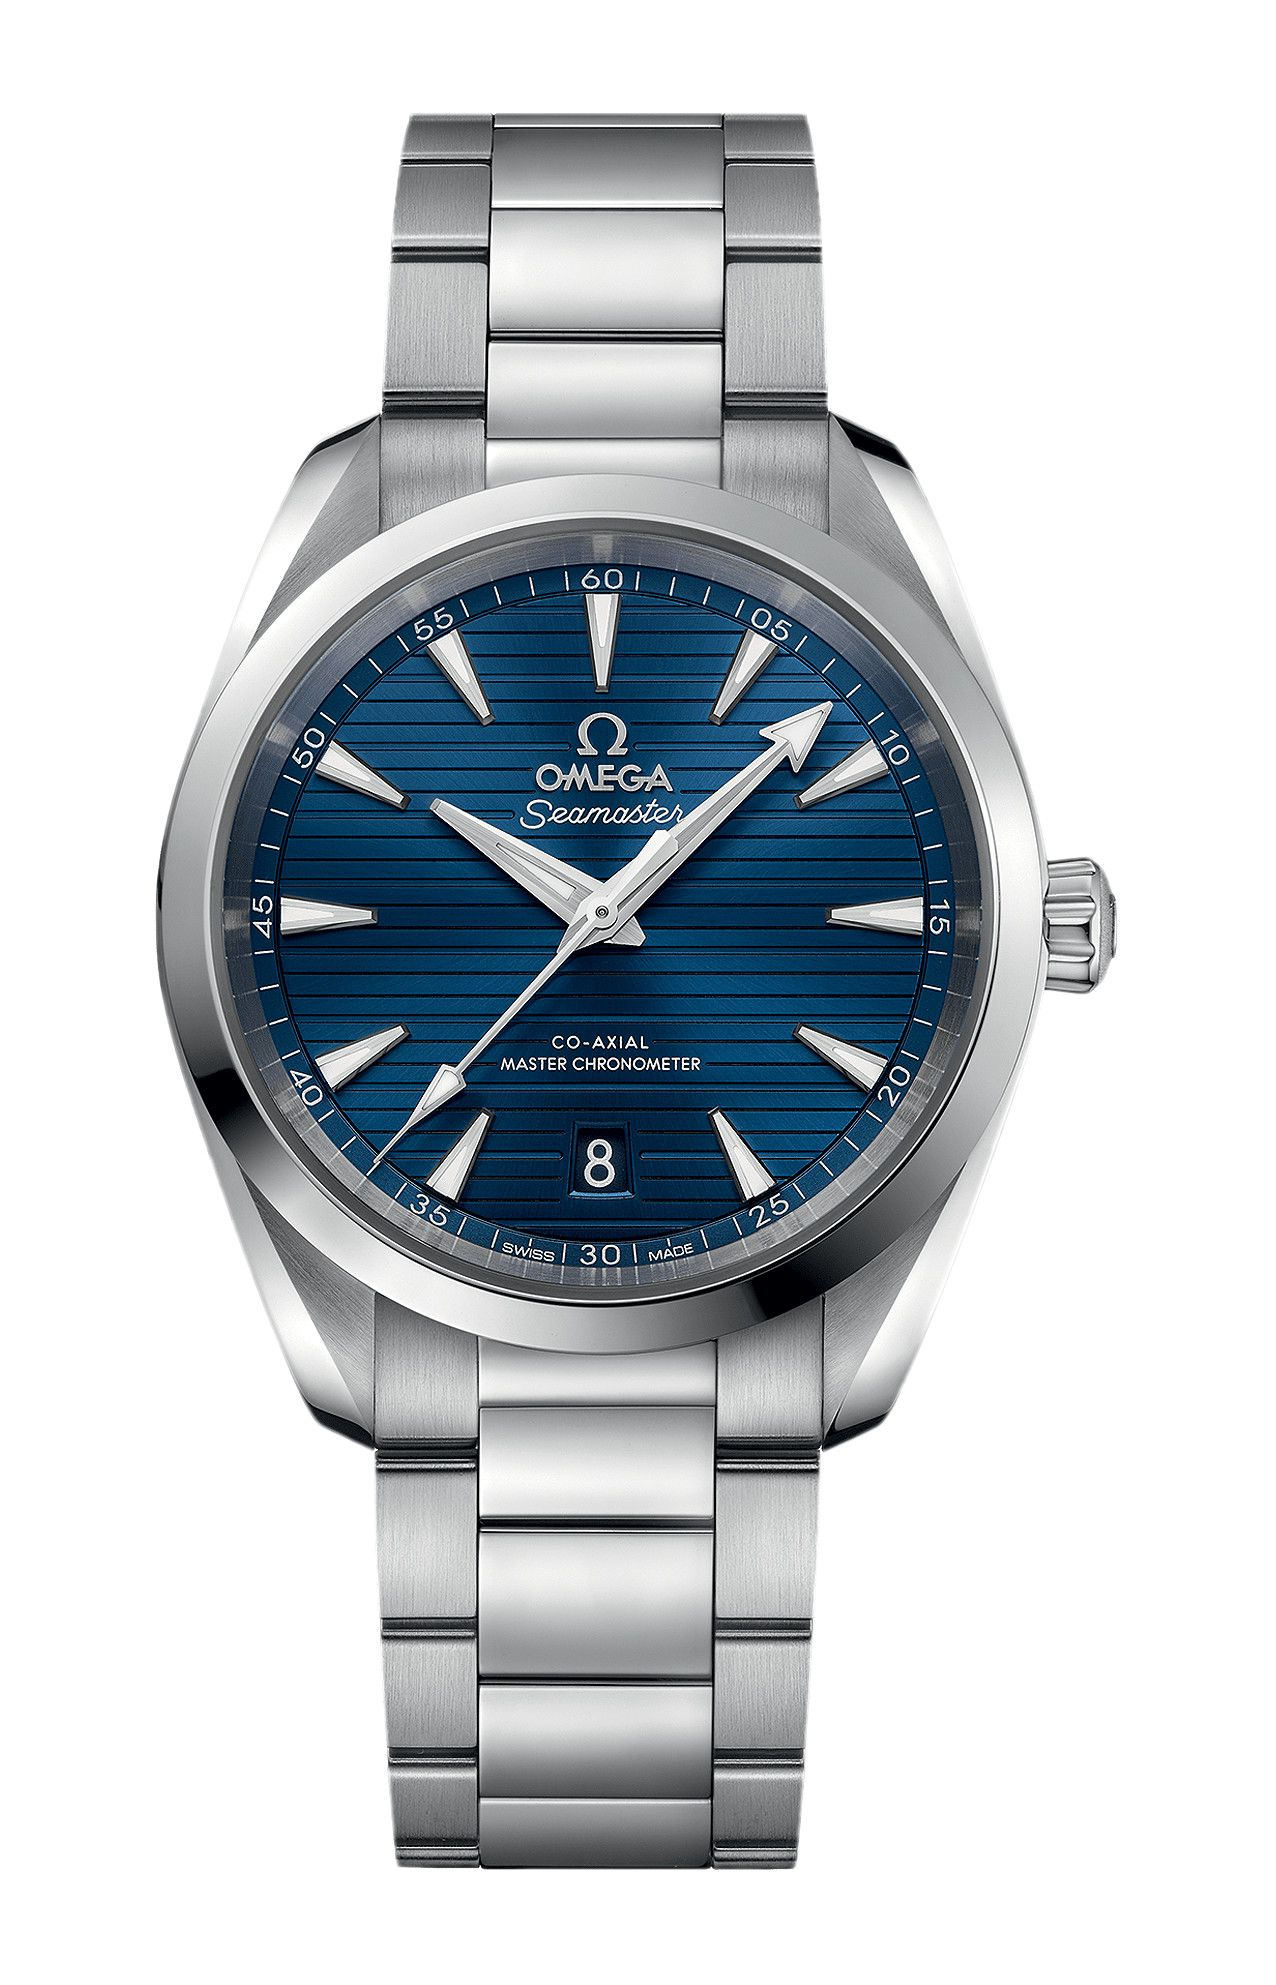 SEAMASTER AQUA TERRA 150M OMEGA CO-AXIAL MASTER CHRONOMETER 38 MM - 220.10.38.20.03.001